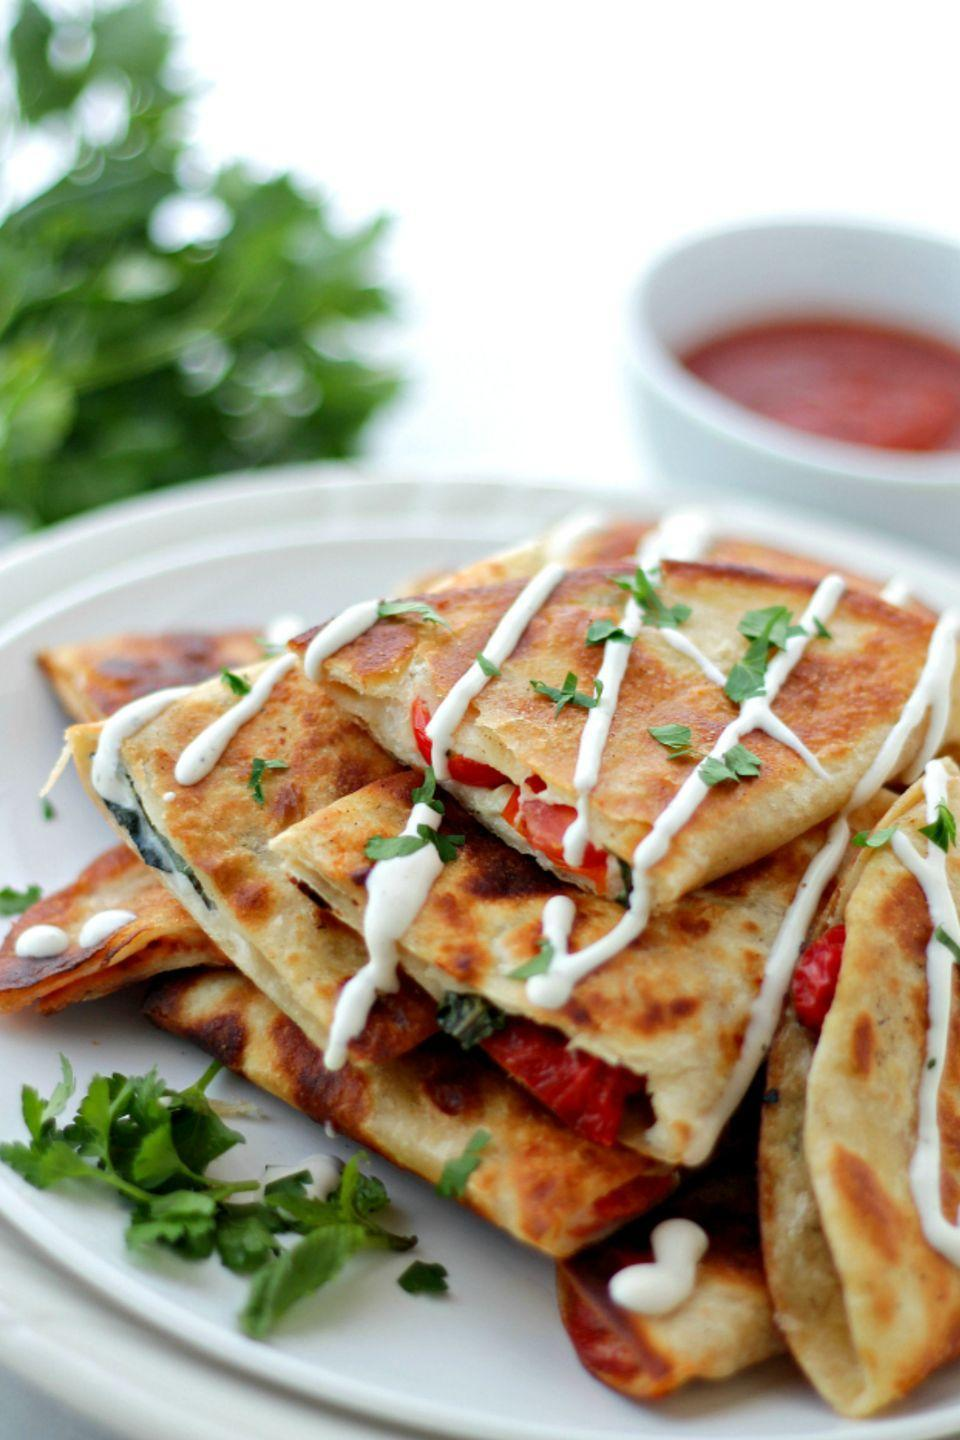 "<p>Now you can enjoy a slice of pizza <em>and </em>a quesadilla in one. Genius!</p><p><strong>Get the recipe at <a href=""http://diethood.com/pizzadillas/"" rel=""nofollow noopener"" target=""_blank"" data-ylk=""slk:Diethood"" class=""link rapid-noclick-resp"">Diethood</a>. </strong></p>"